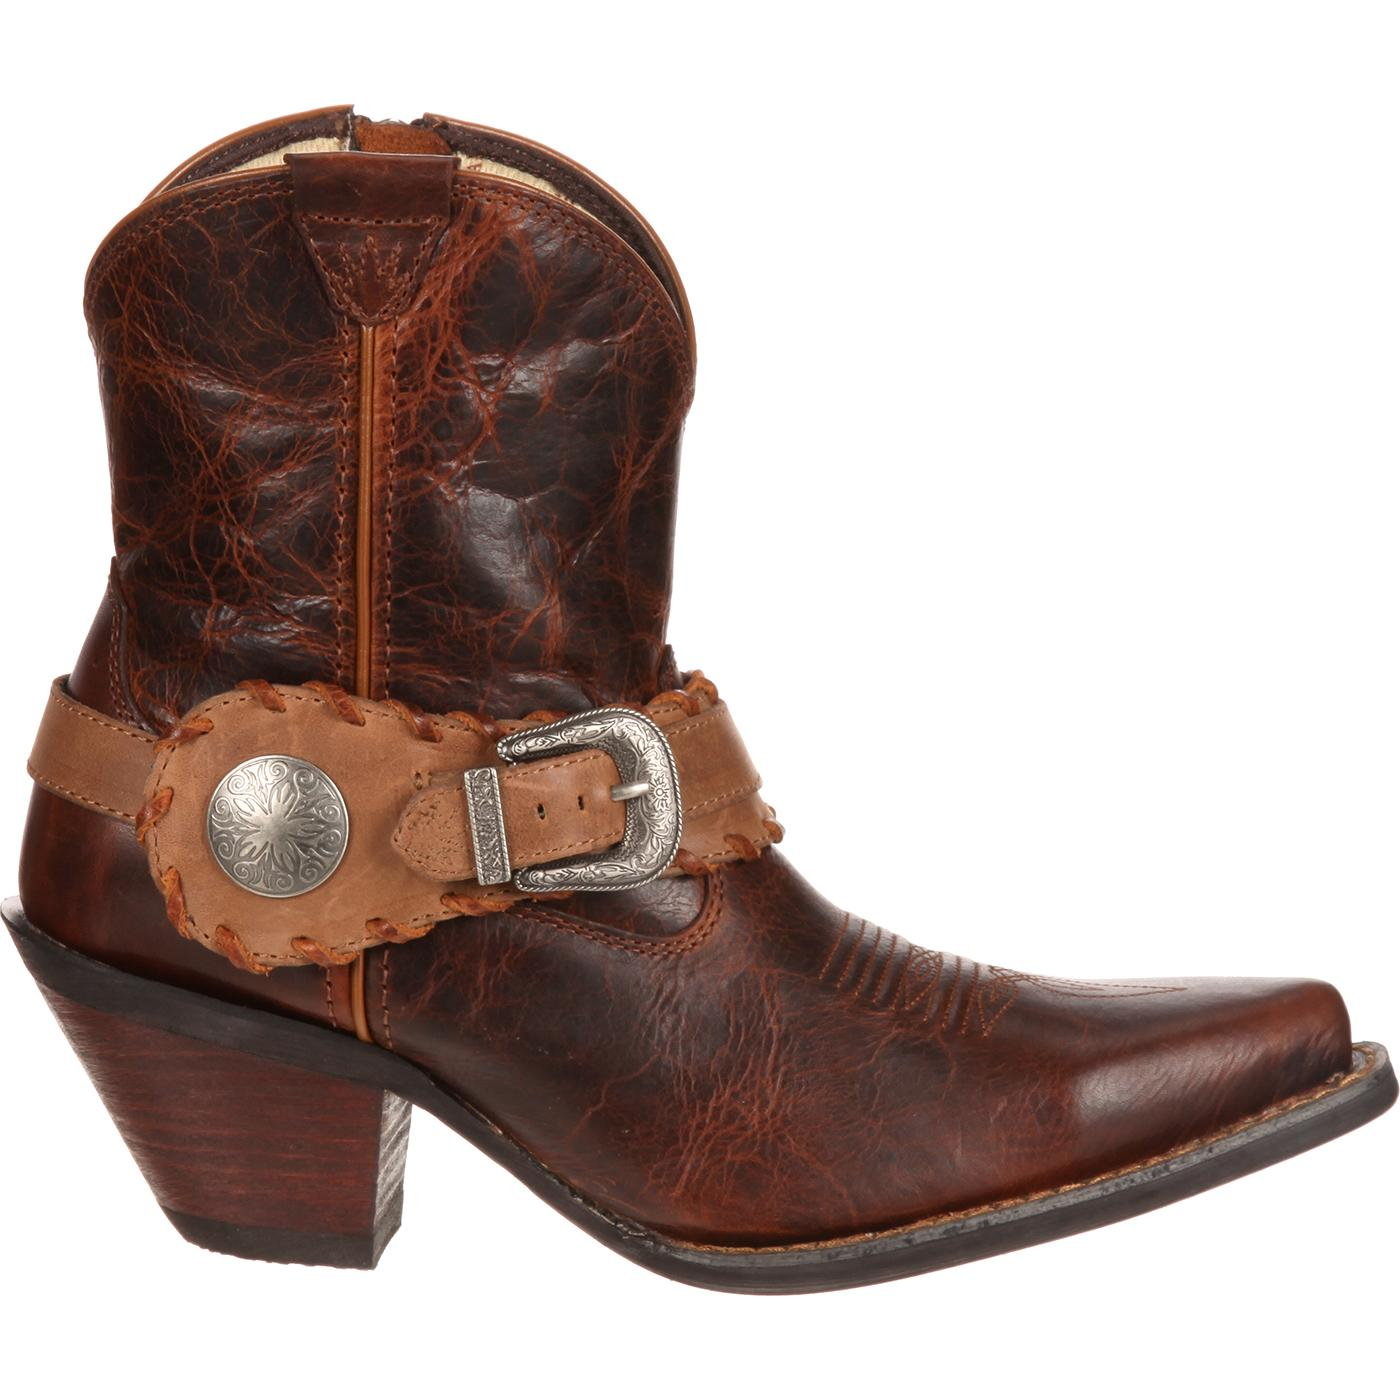 81dfb647c8f Images. Crush by Durango Women's Spur Strap Demi Western Boot ...